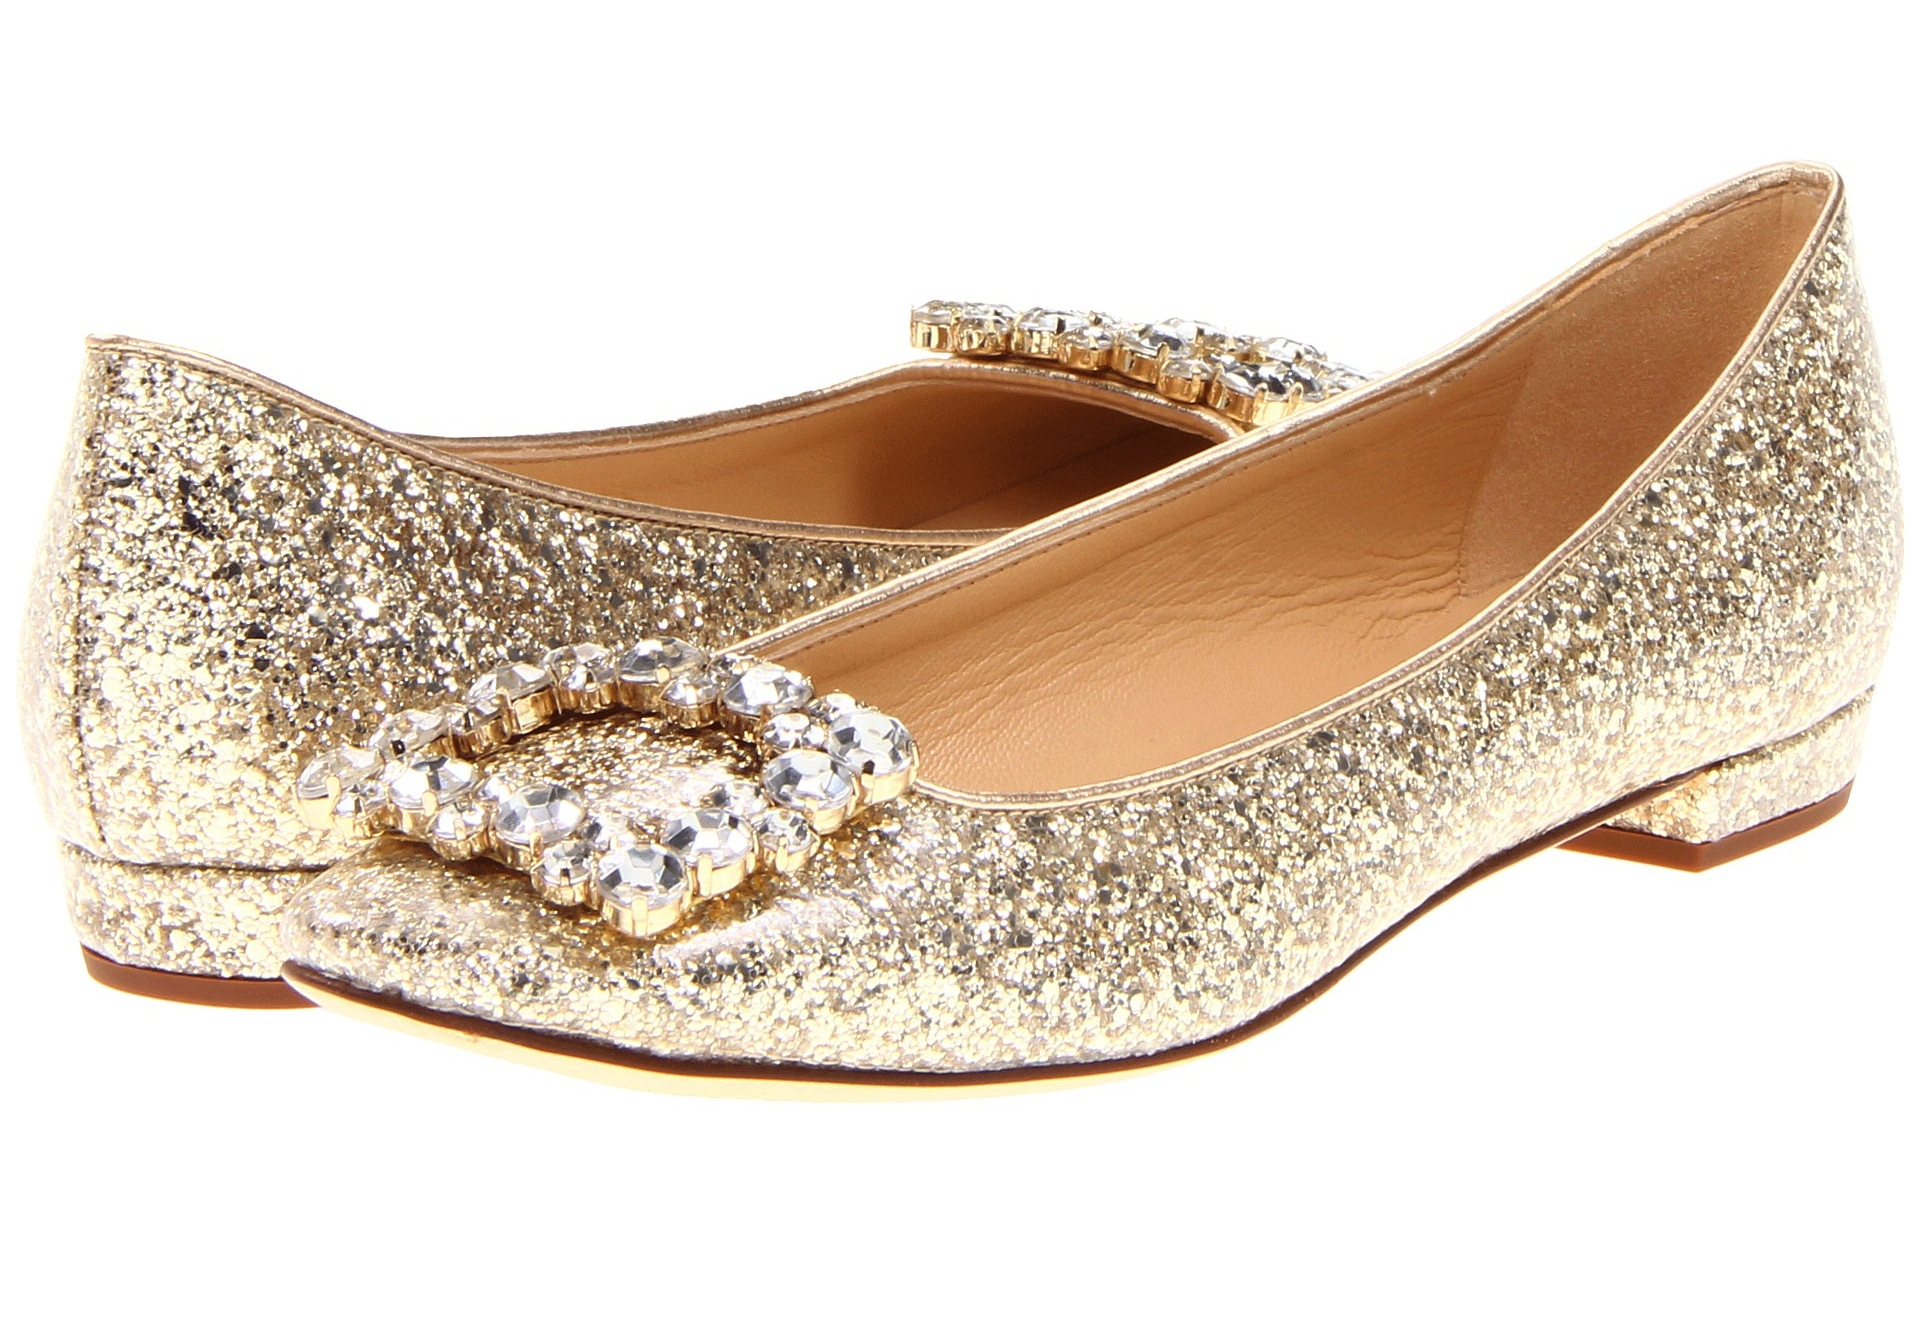 Wedding-accessories-inspiration-shimmery-bridal-heels-kate-spade-flats.original